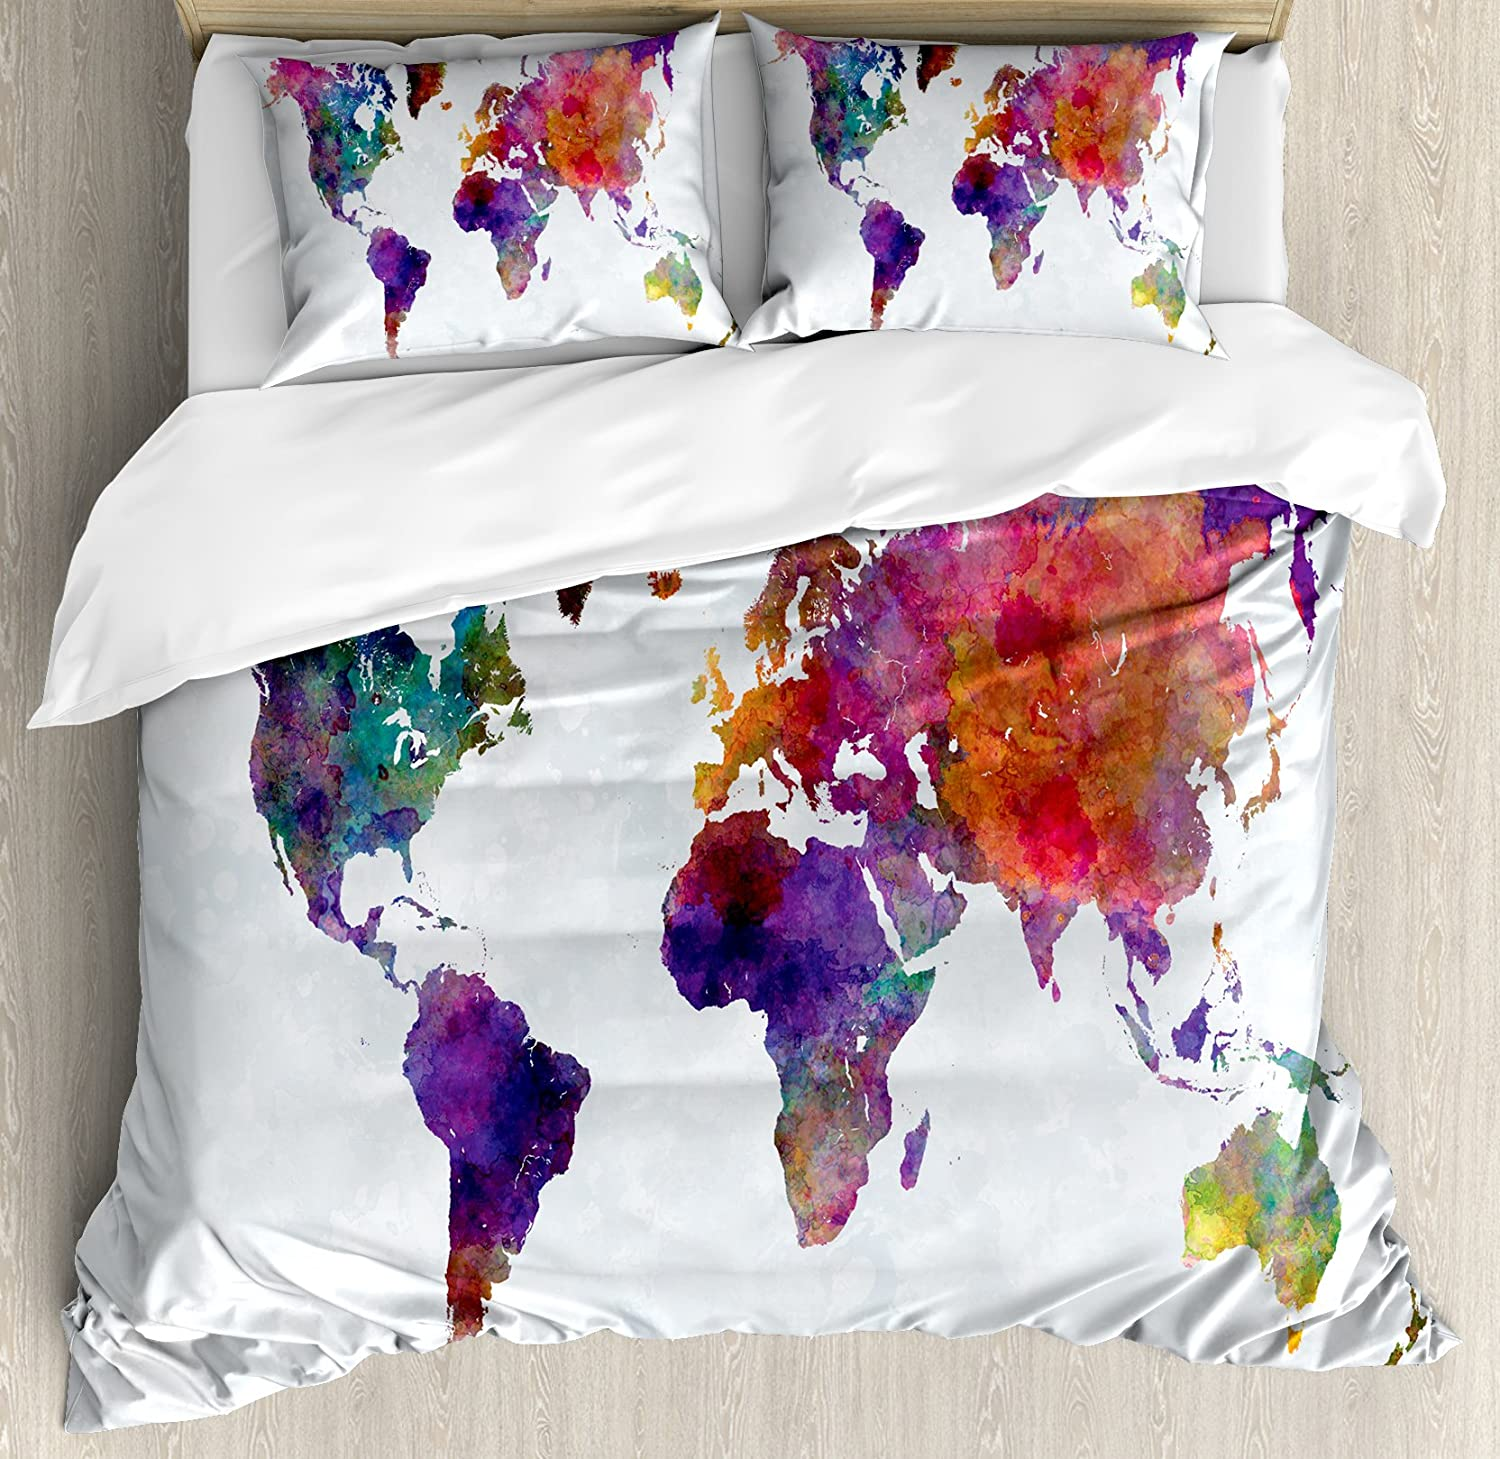 Ambesonne Watercolor Duvet Cover Set Queen Size, Multicolored Hand Drawn World Map Asia Europe Africa America Geography Print, Decorative 3 Piece Bedding Set with 2 Pillow Shams, Multicolor